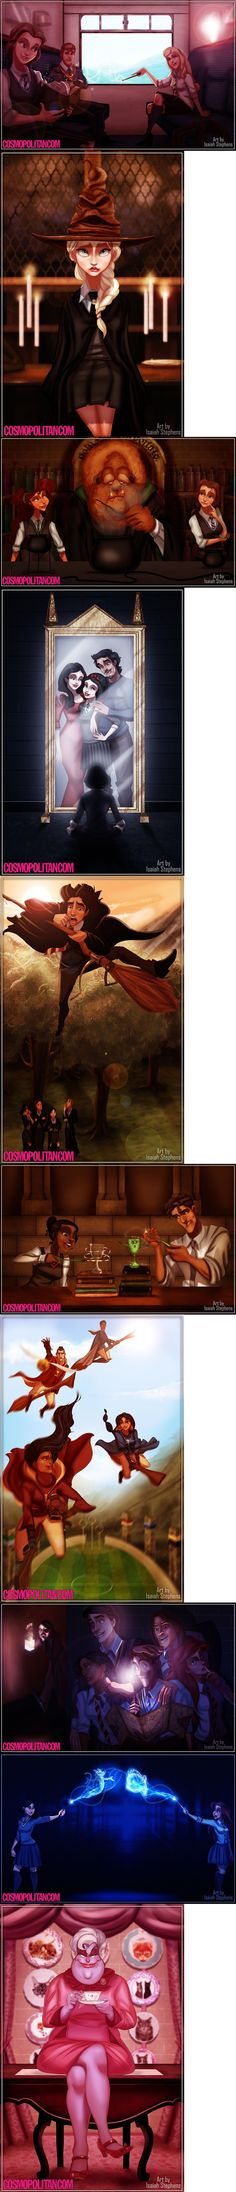 If Disney Princesses Went To Hogwarts <<< thinking accurate wow accurate so accurate then the last one killed me